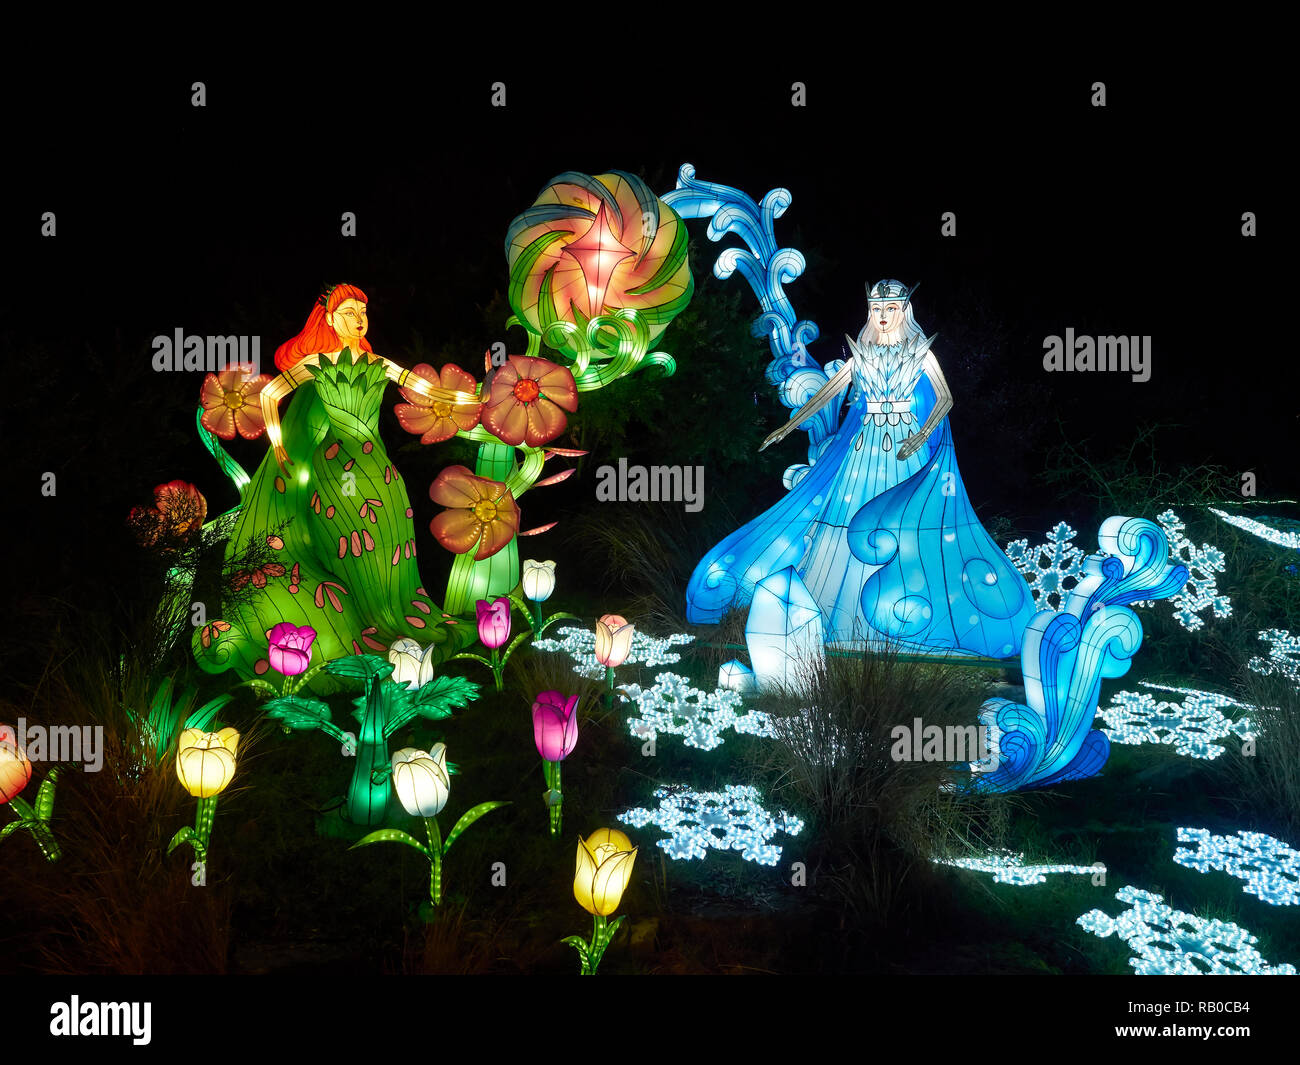 Edinburgh Zoo, Edinburgh, Scotland, UK, 5th January 2019, Giant Lanterns of China Display of Mythical Creatures, Legends and Animals throughout the Zoo during January 2019. Fairytale Princesses. - Stock Image